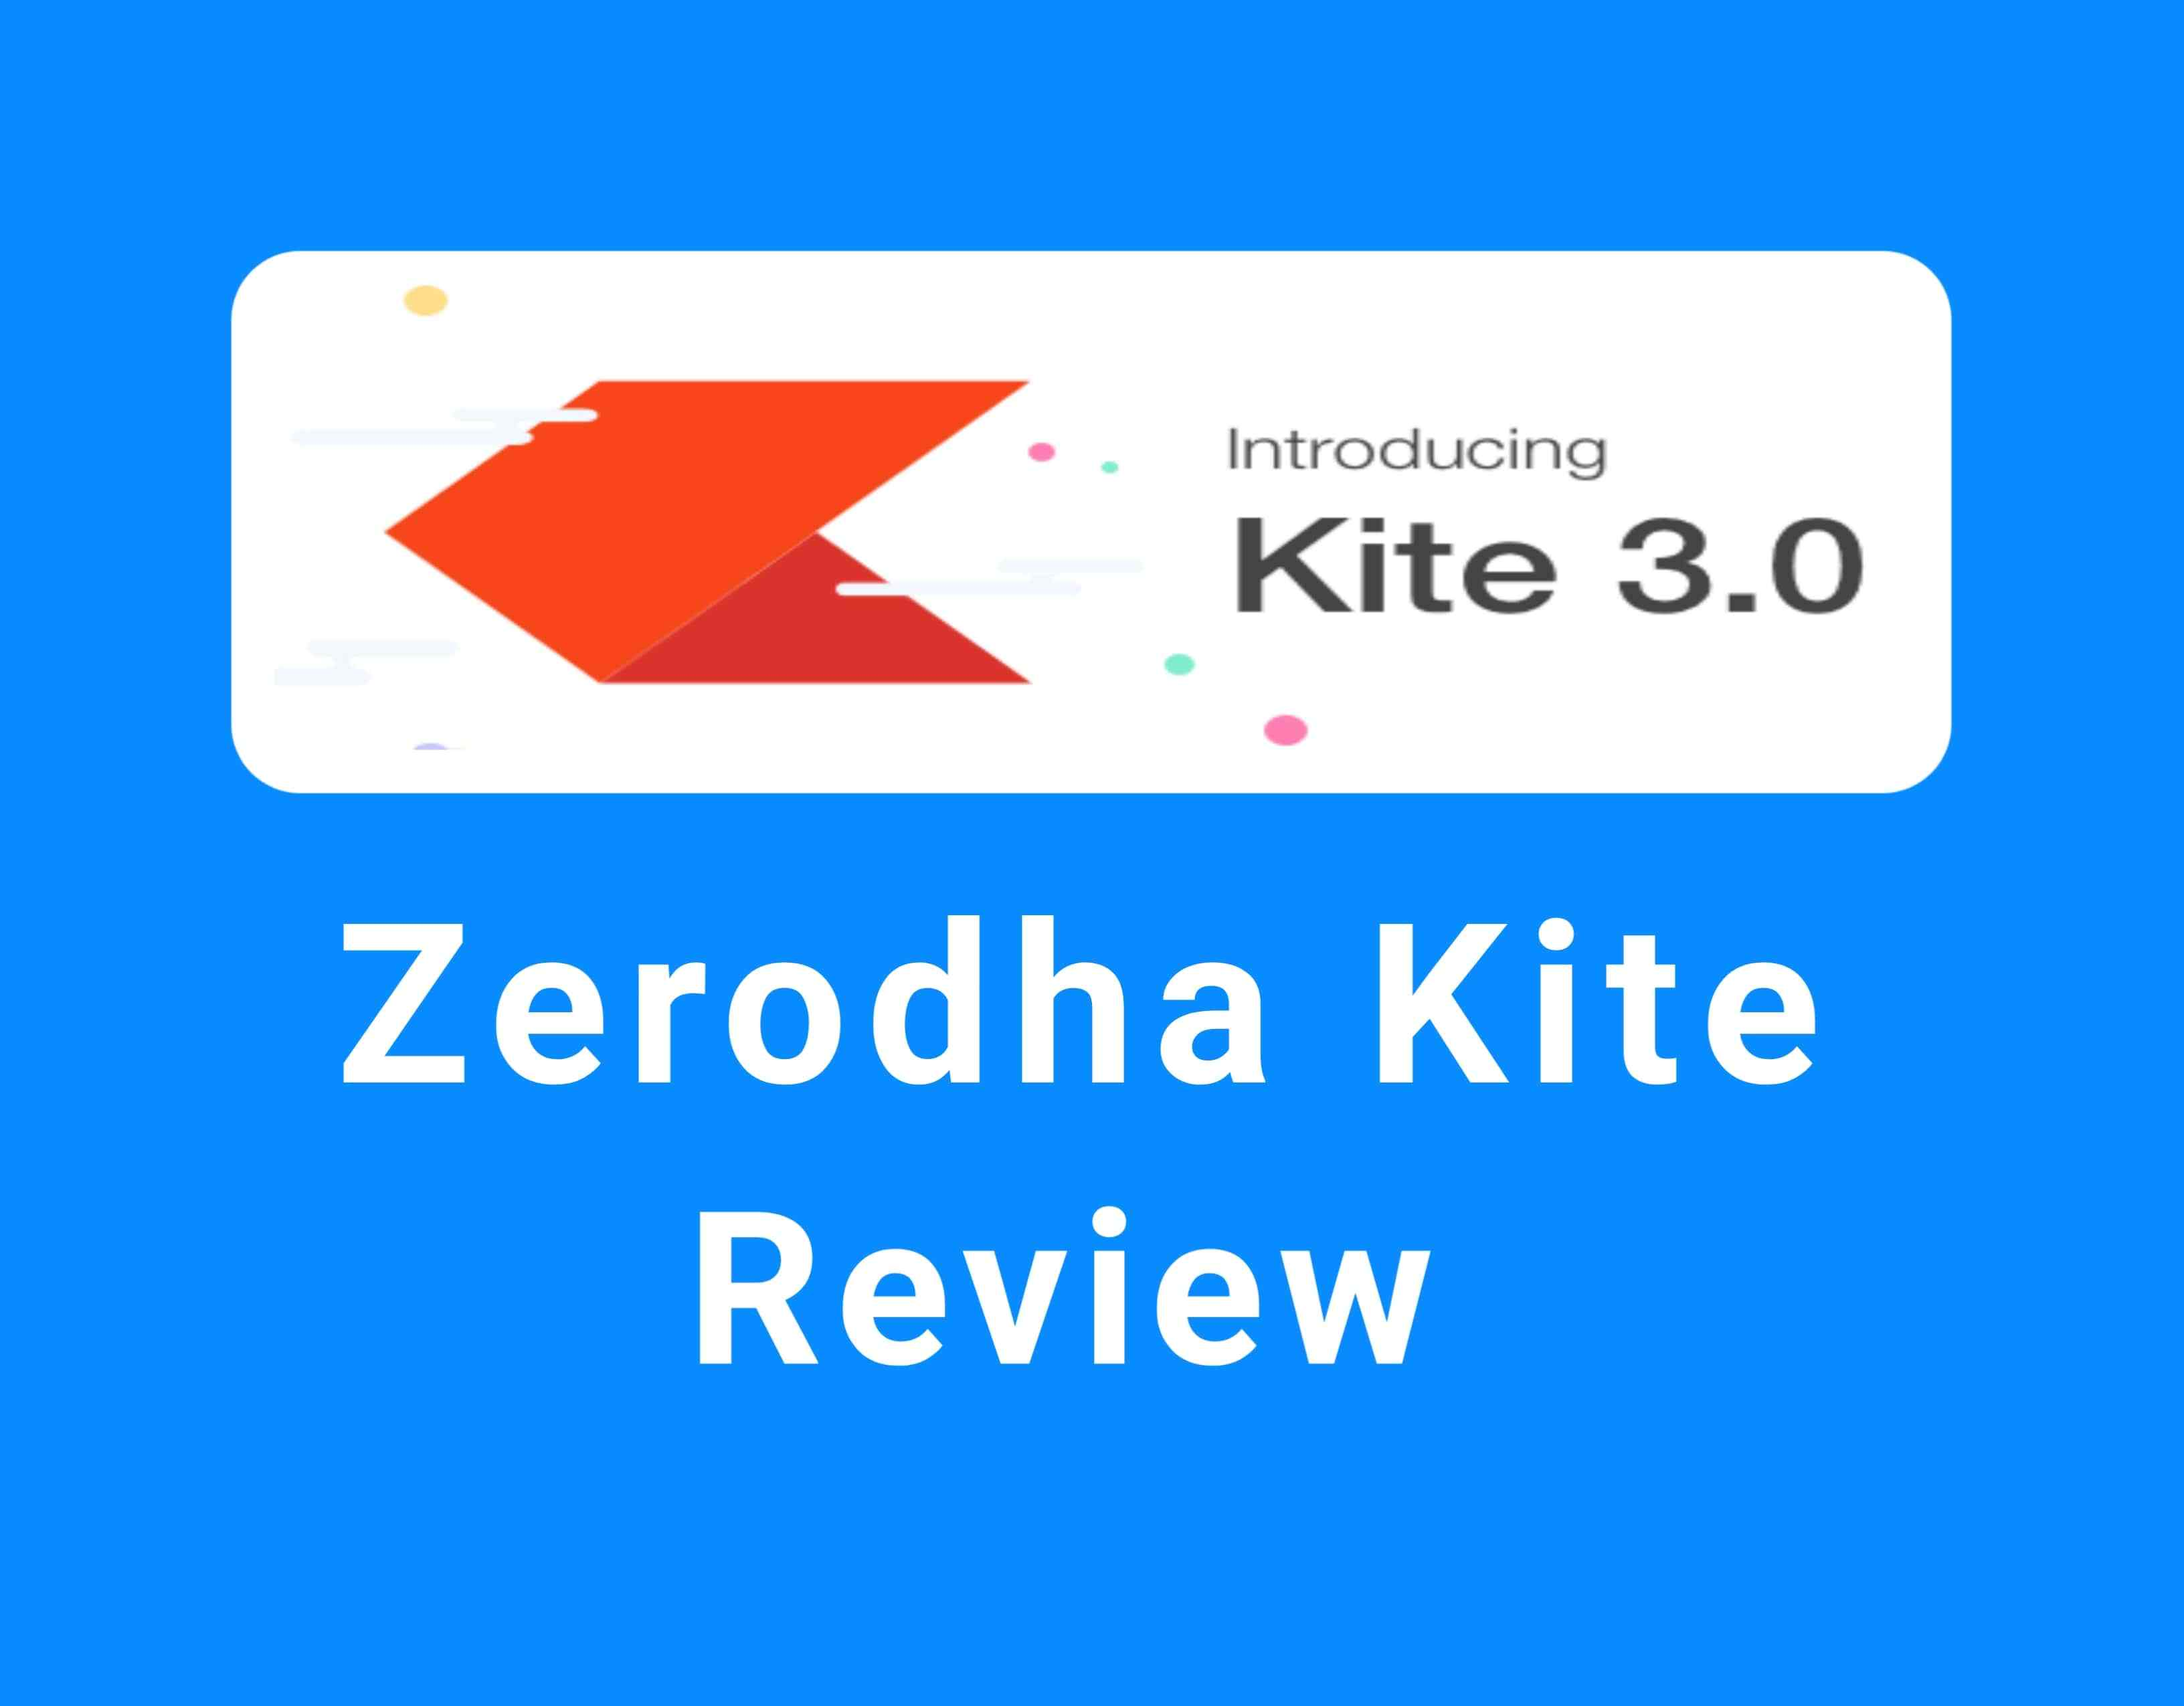 Zerodha Kite Review - 2020 - Features, Pros And Cons